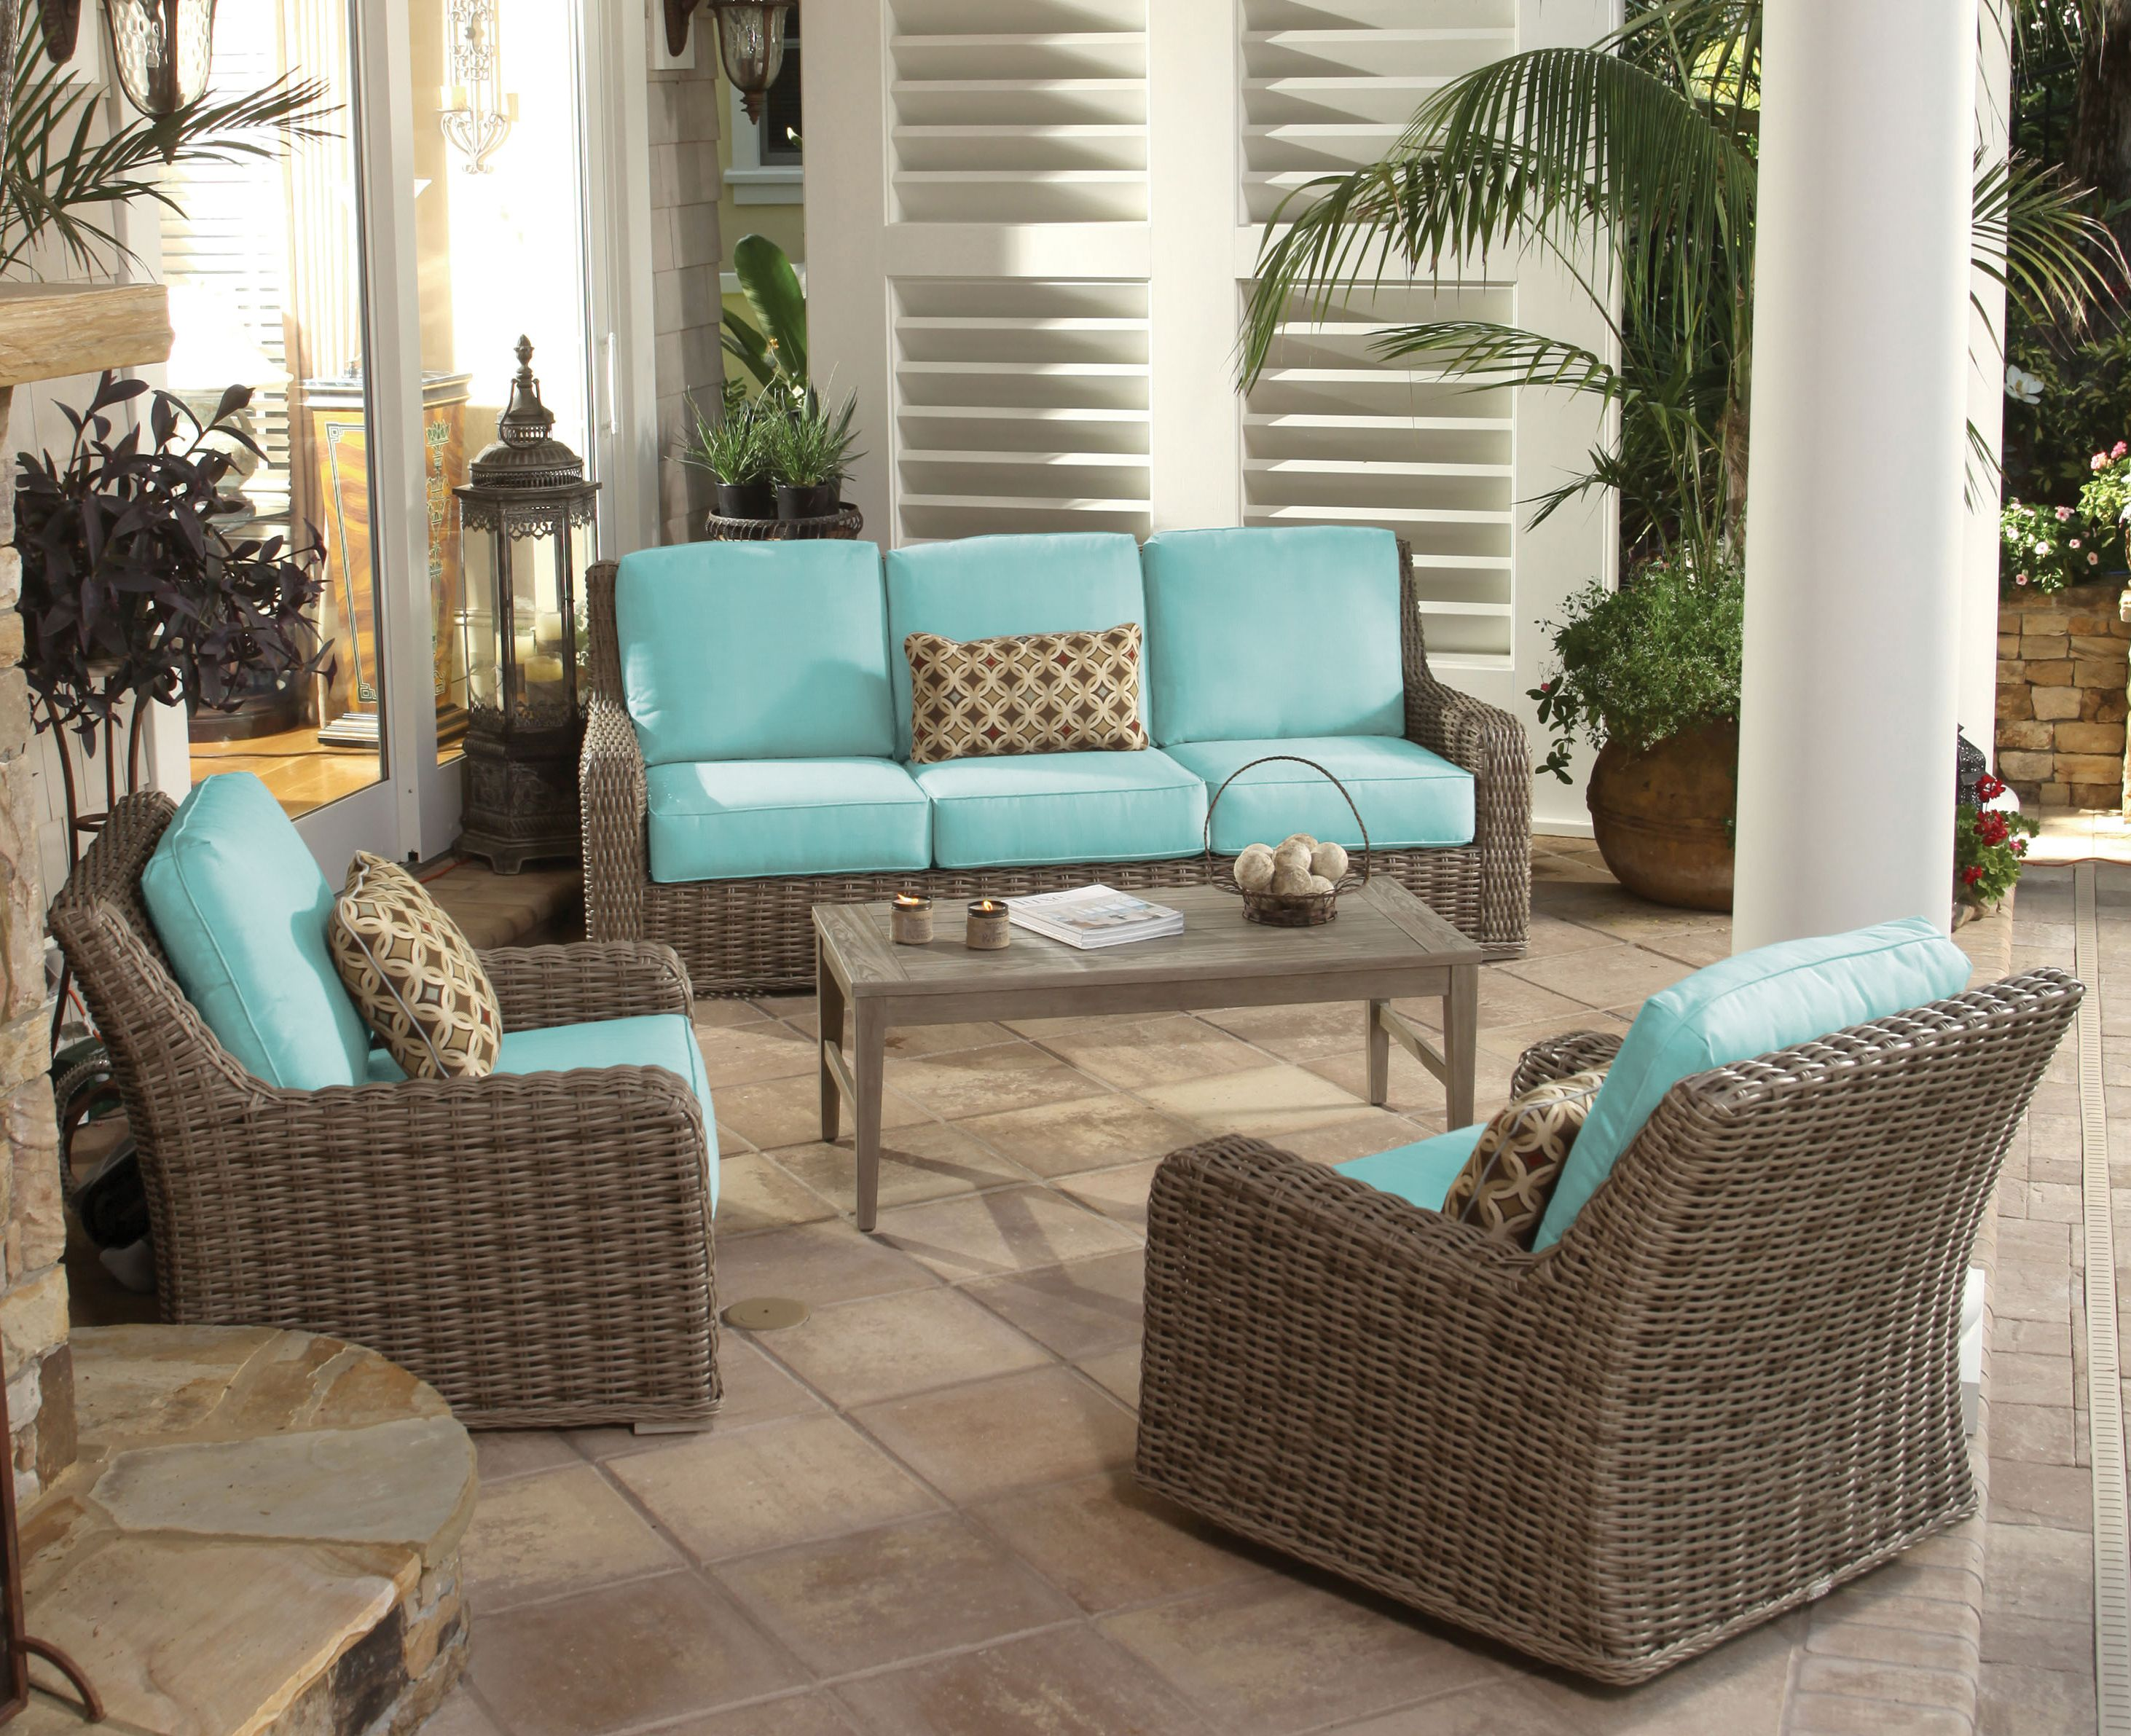 The wicker Laurent collection from Ebel. Wicker patio